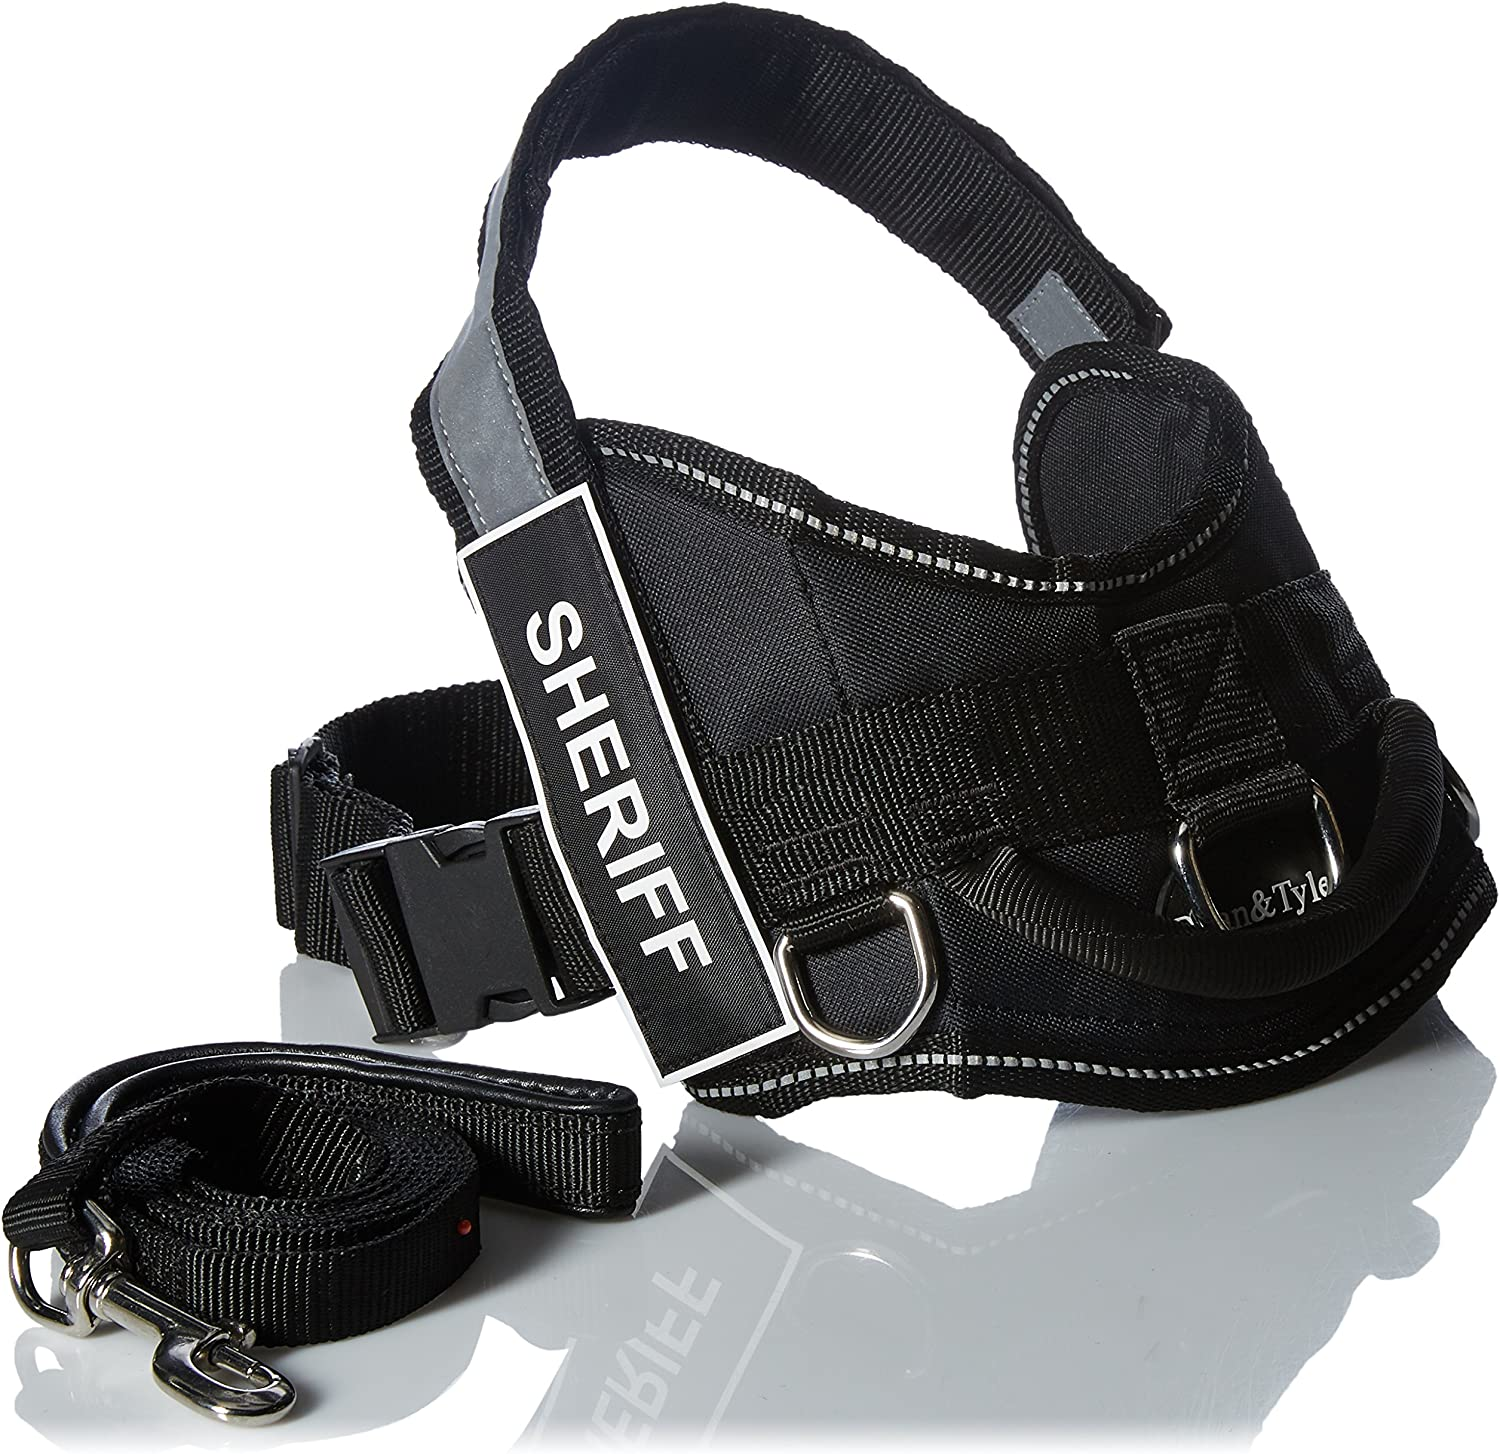 Dean and Tyler Bundle  One DT Works  Harness, Sheriff, Small (25   34 ) + One Padded Puppy  Leash, 6 FT Stainless Steel Snap  Black